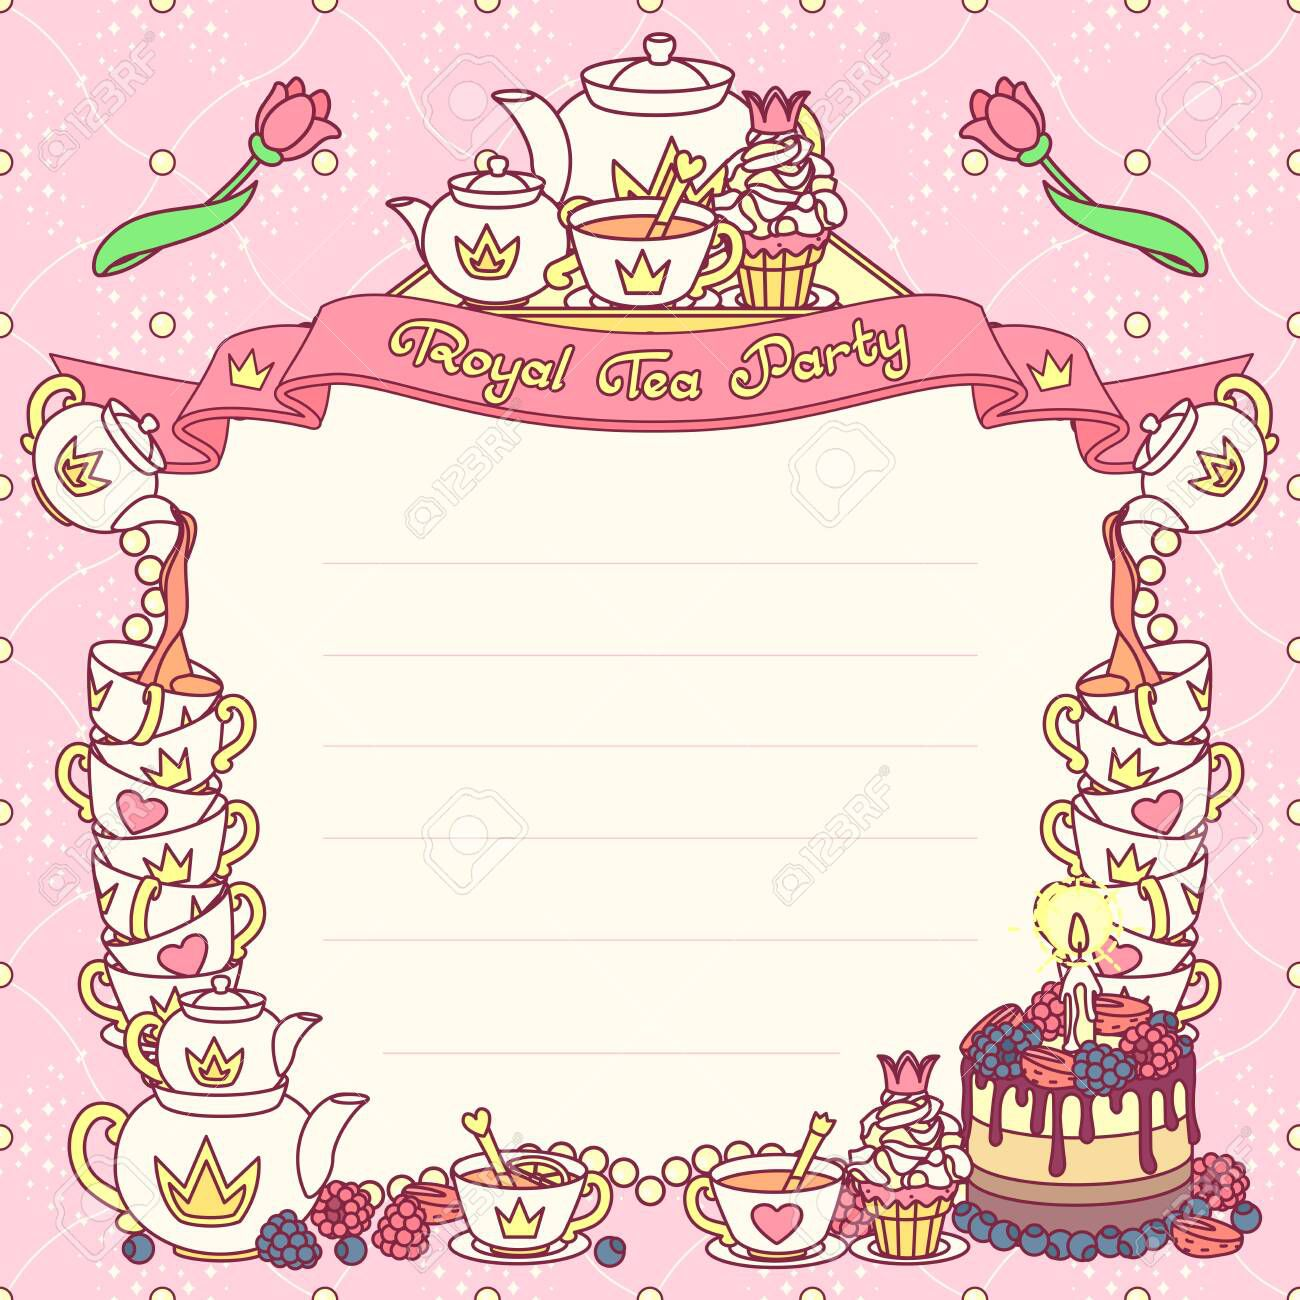 005 Unique Tea Party Invitation Template Image  Templates High Free Download Bridal ShowerFull